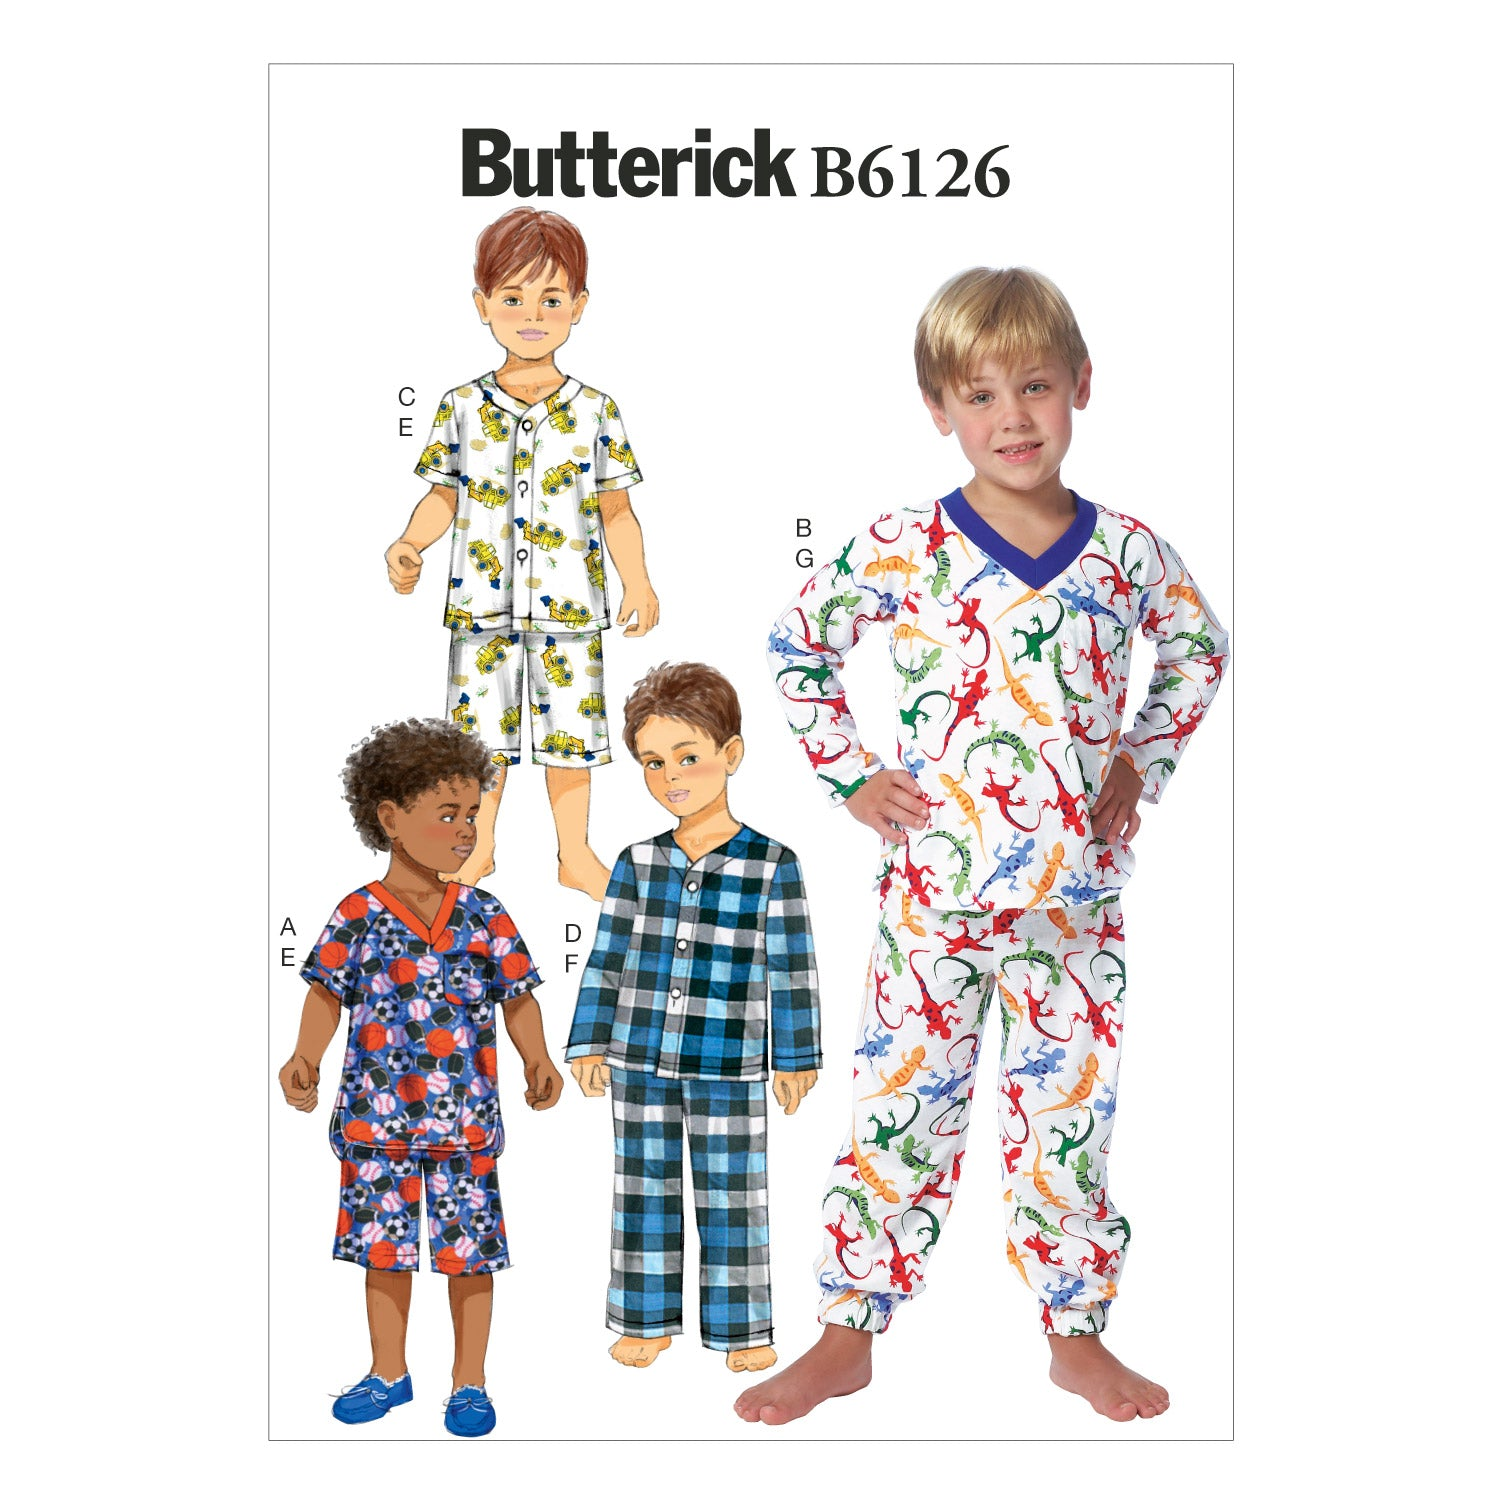 Butterick B6126CL0 Children's/Boys' Top, Shorts and Pants 6-7-8